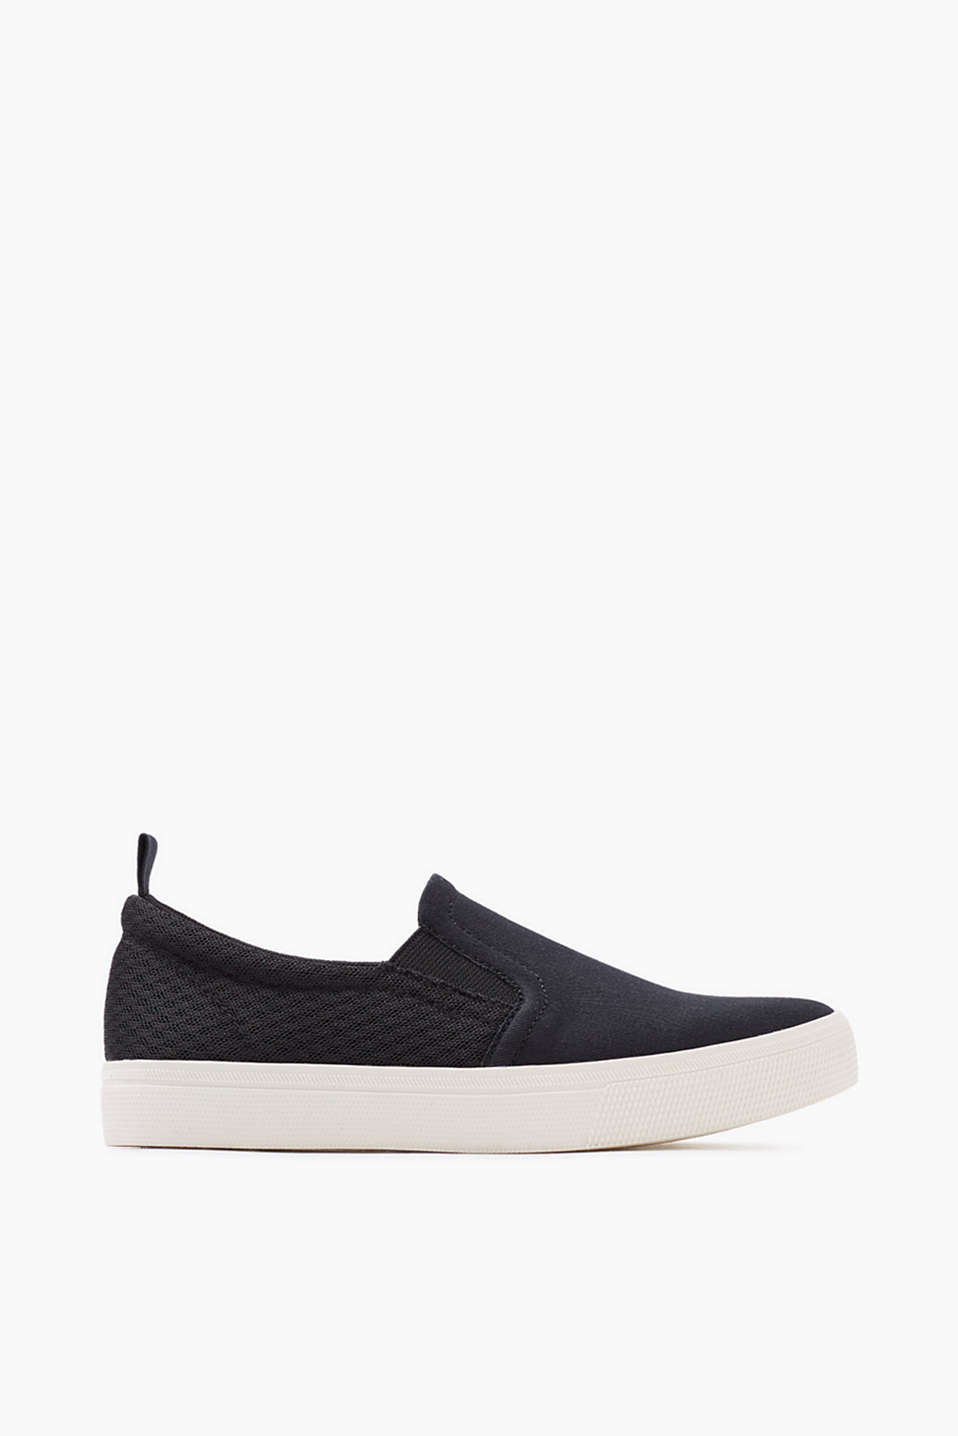 Trendy slip-on trainers with a rubber sole, made of cotton canvas